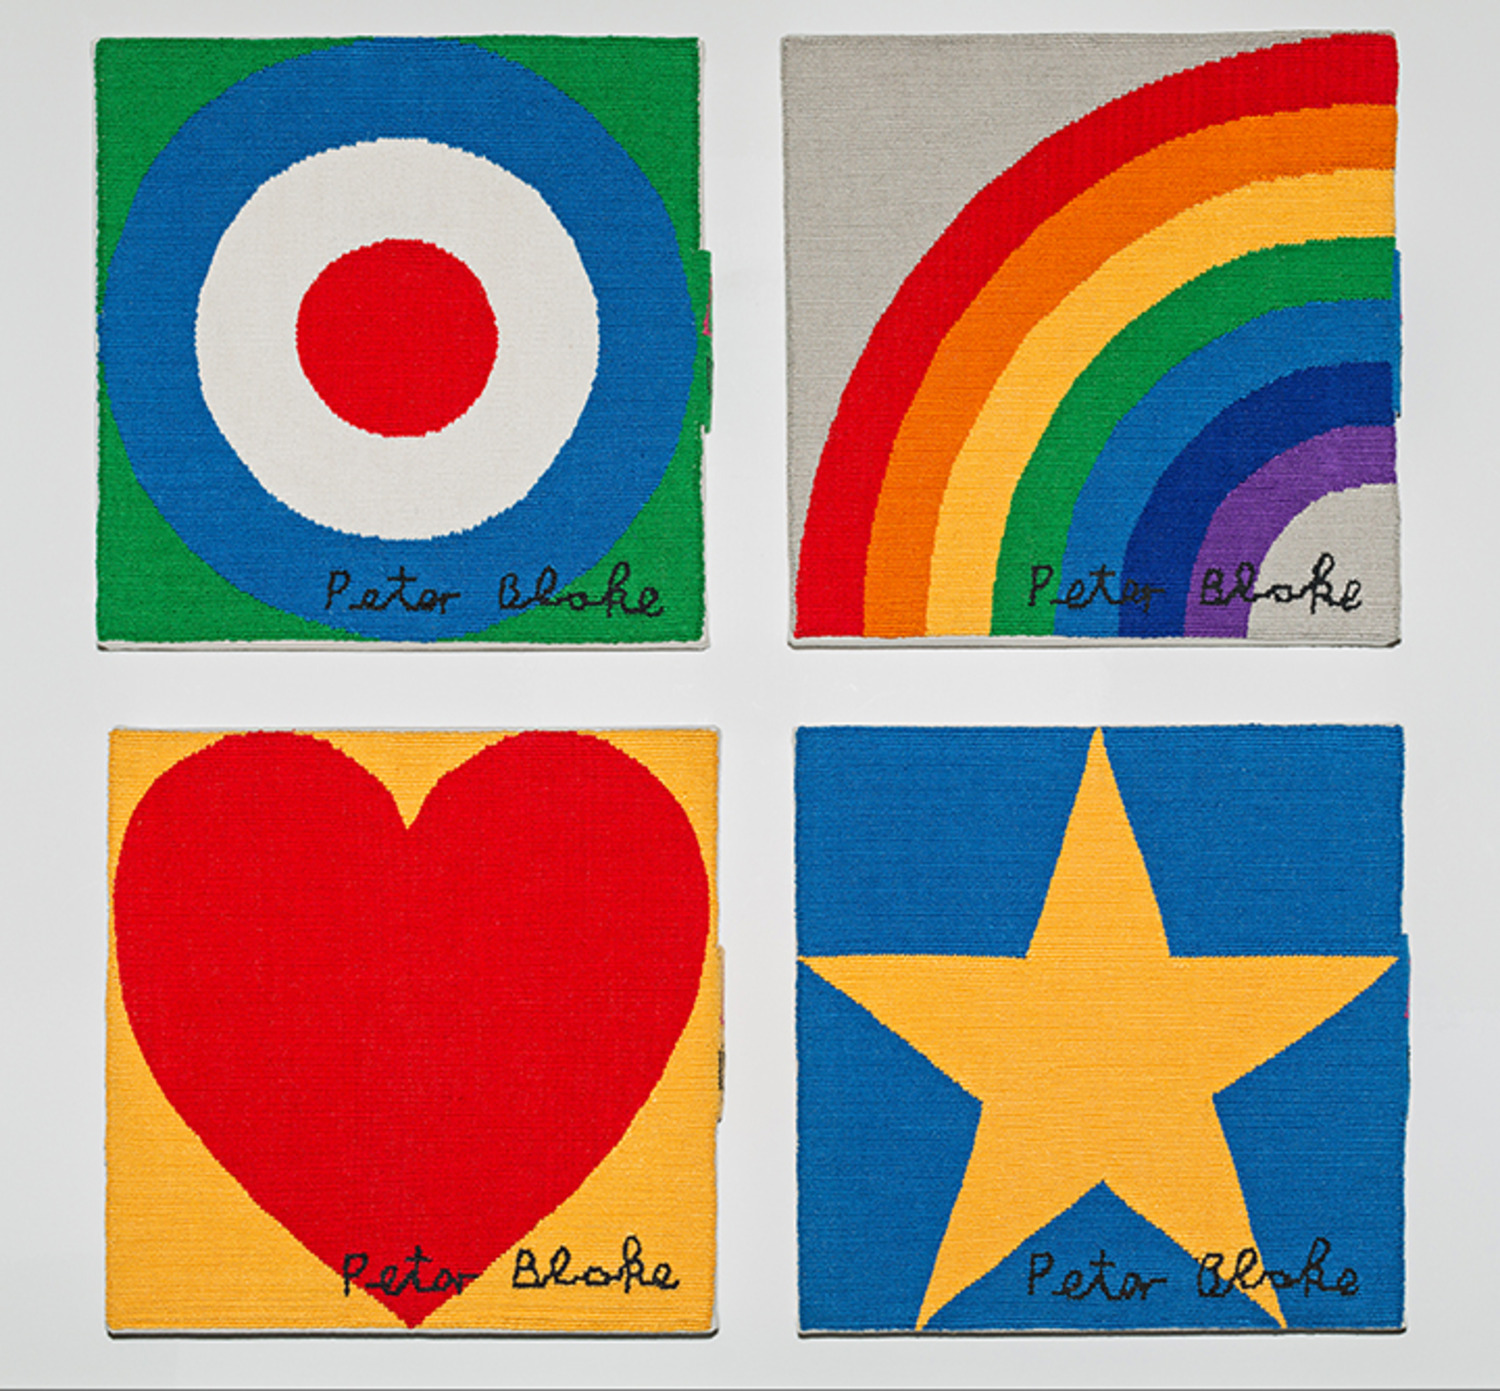 558d2cfcb801d-Peter Blake - Target, Rainbow, Star, Heart 2012_WEBVERSION.jpg